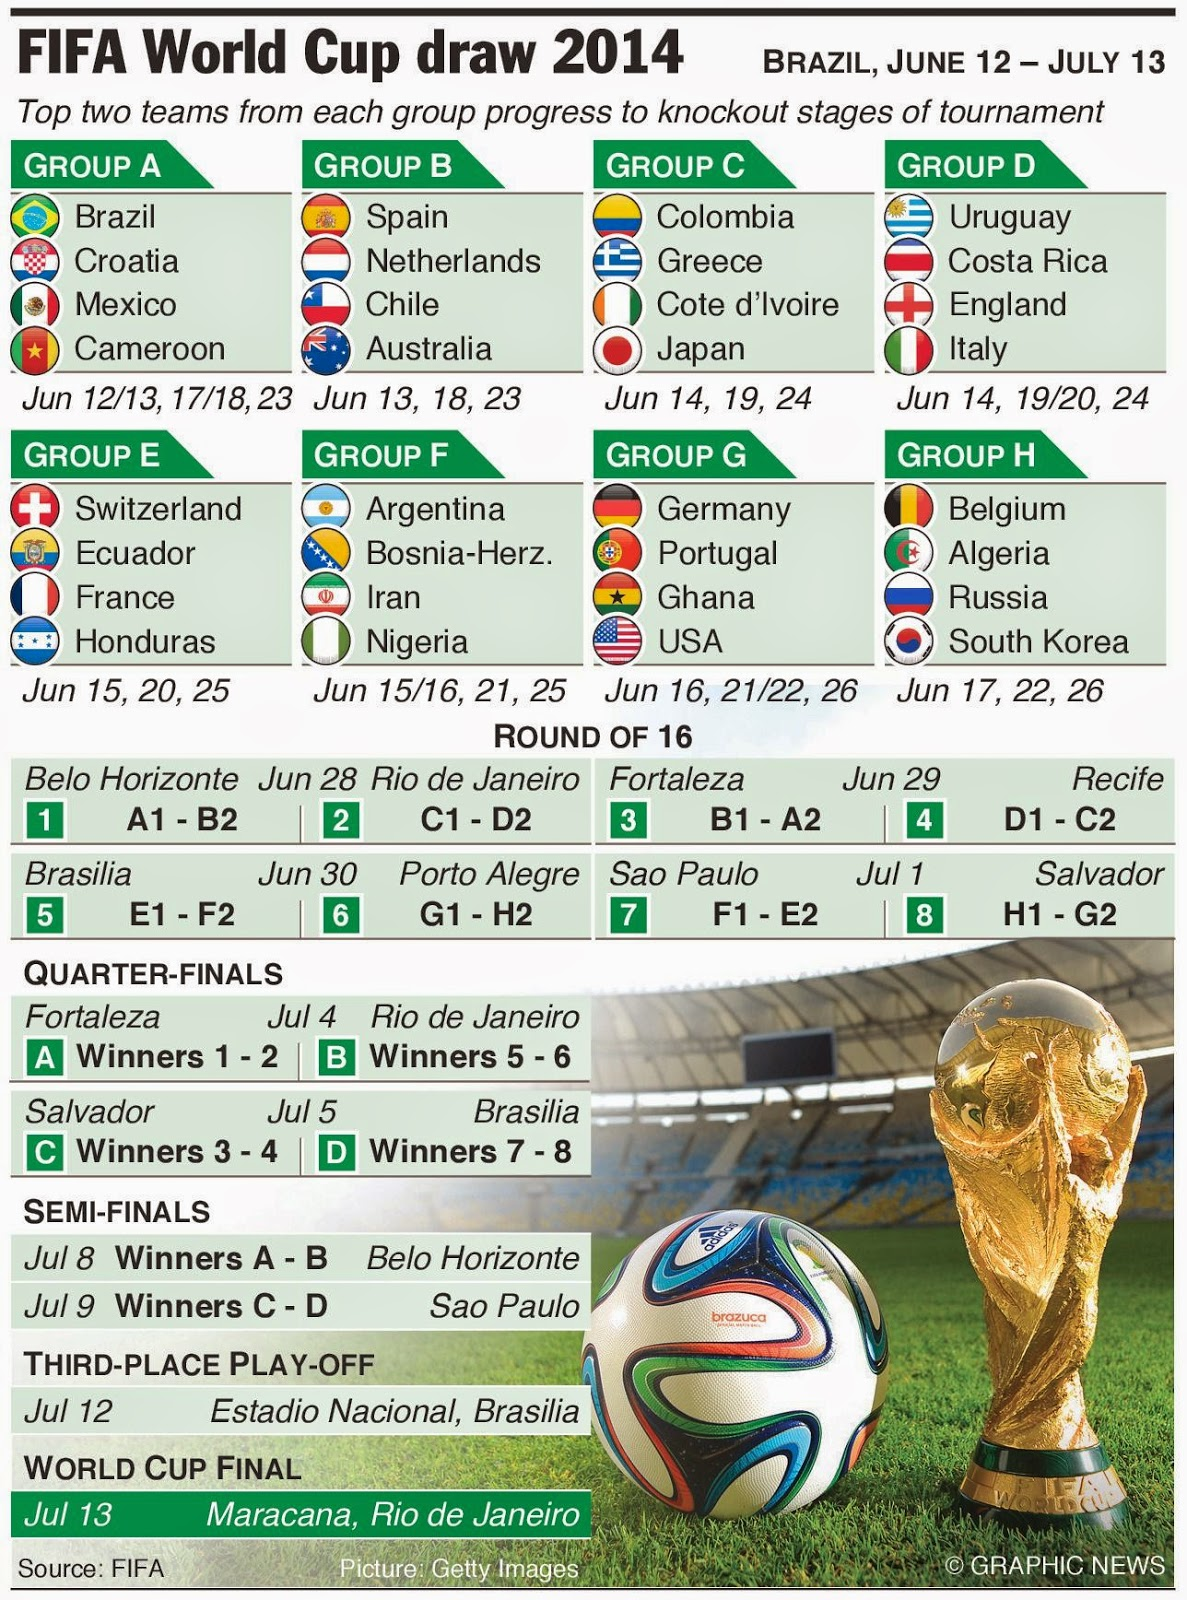 2014 Brazil World Cup Schedule